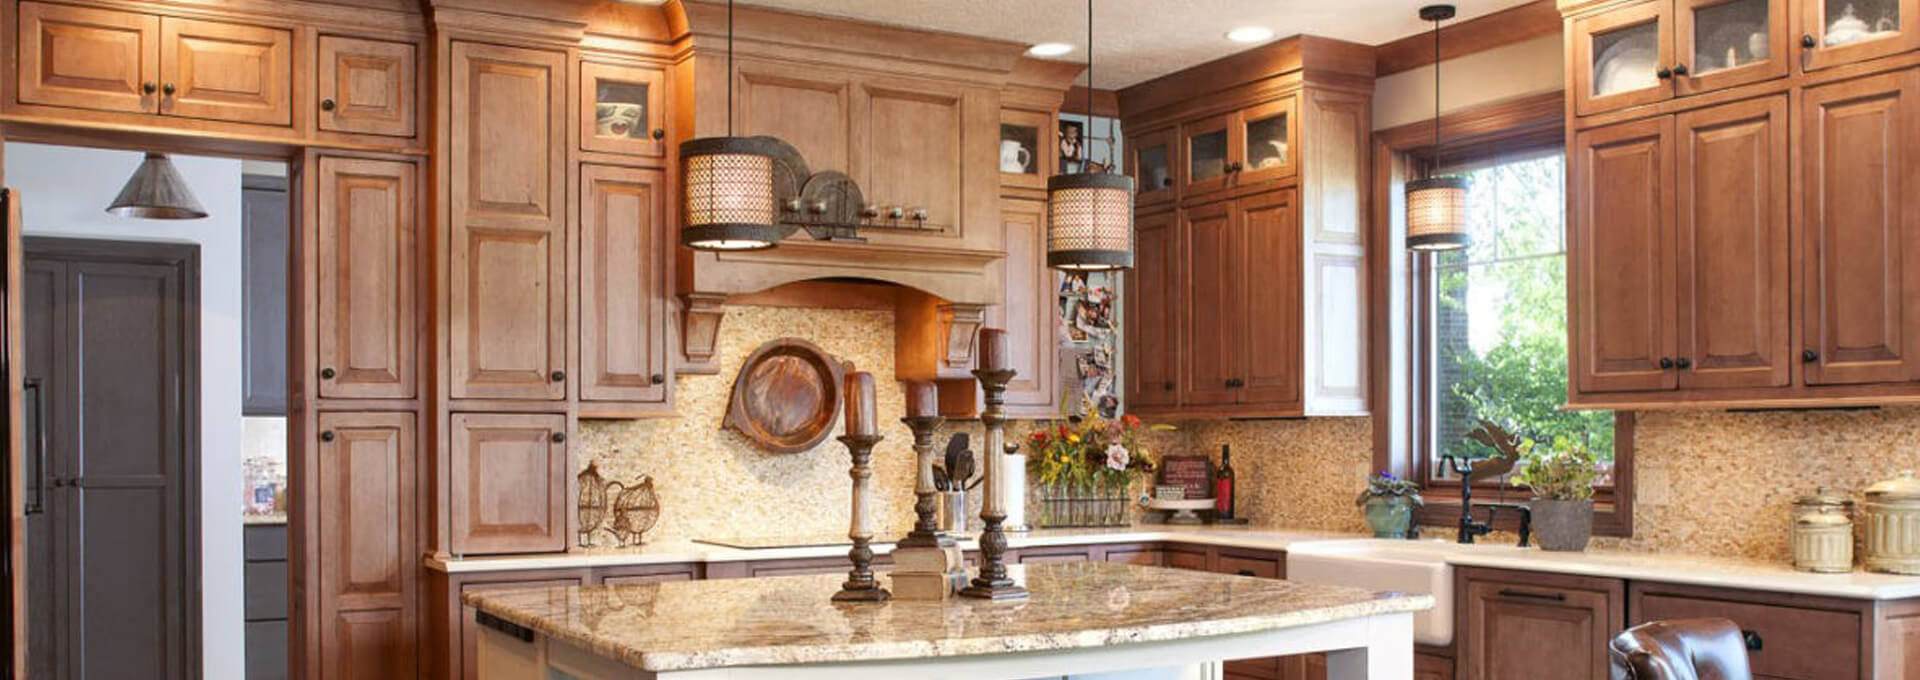 Kitchen Express Cabinets Countertops Showroom In Syracuse Ny